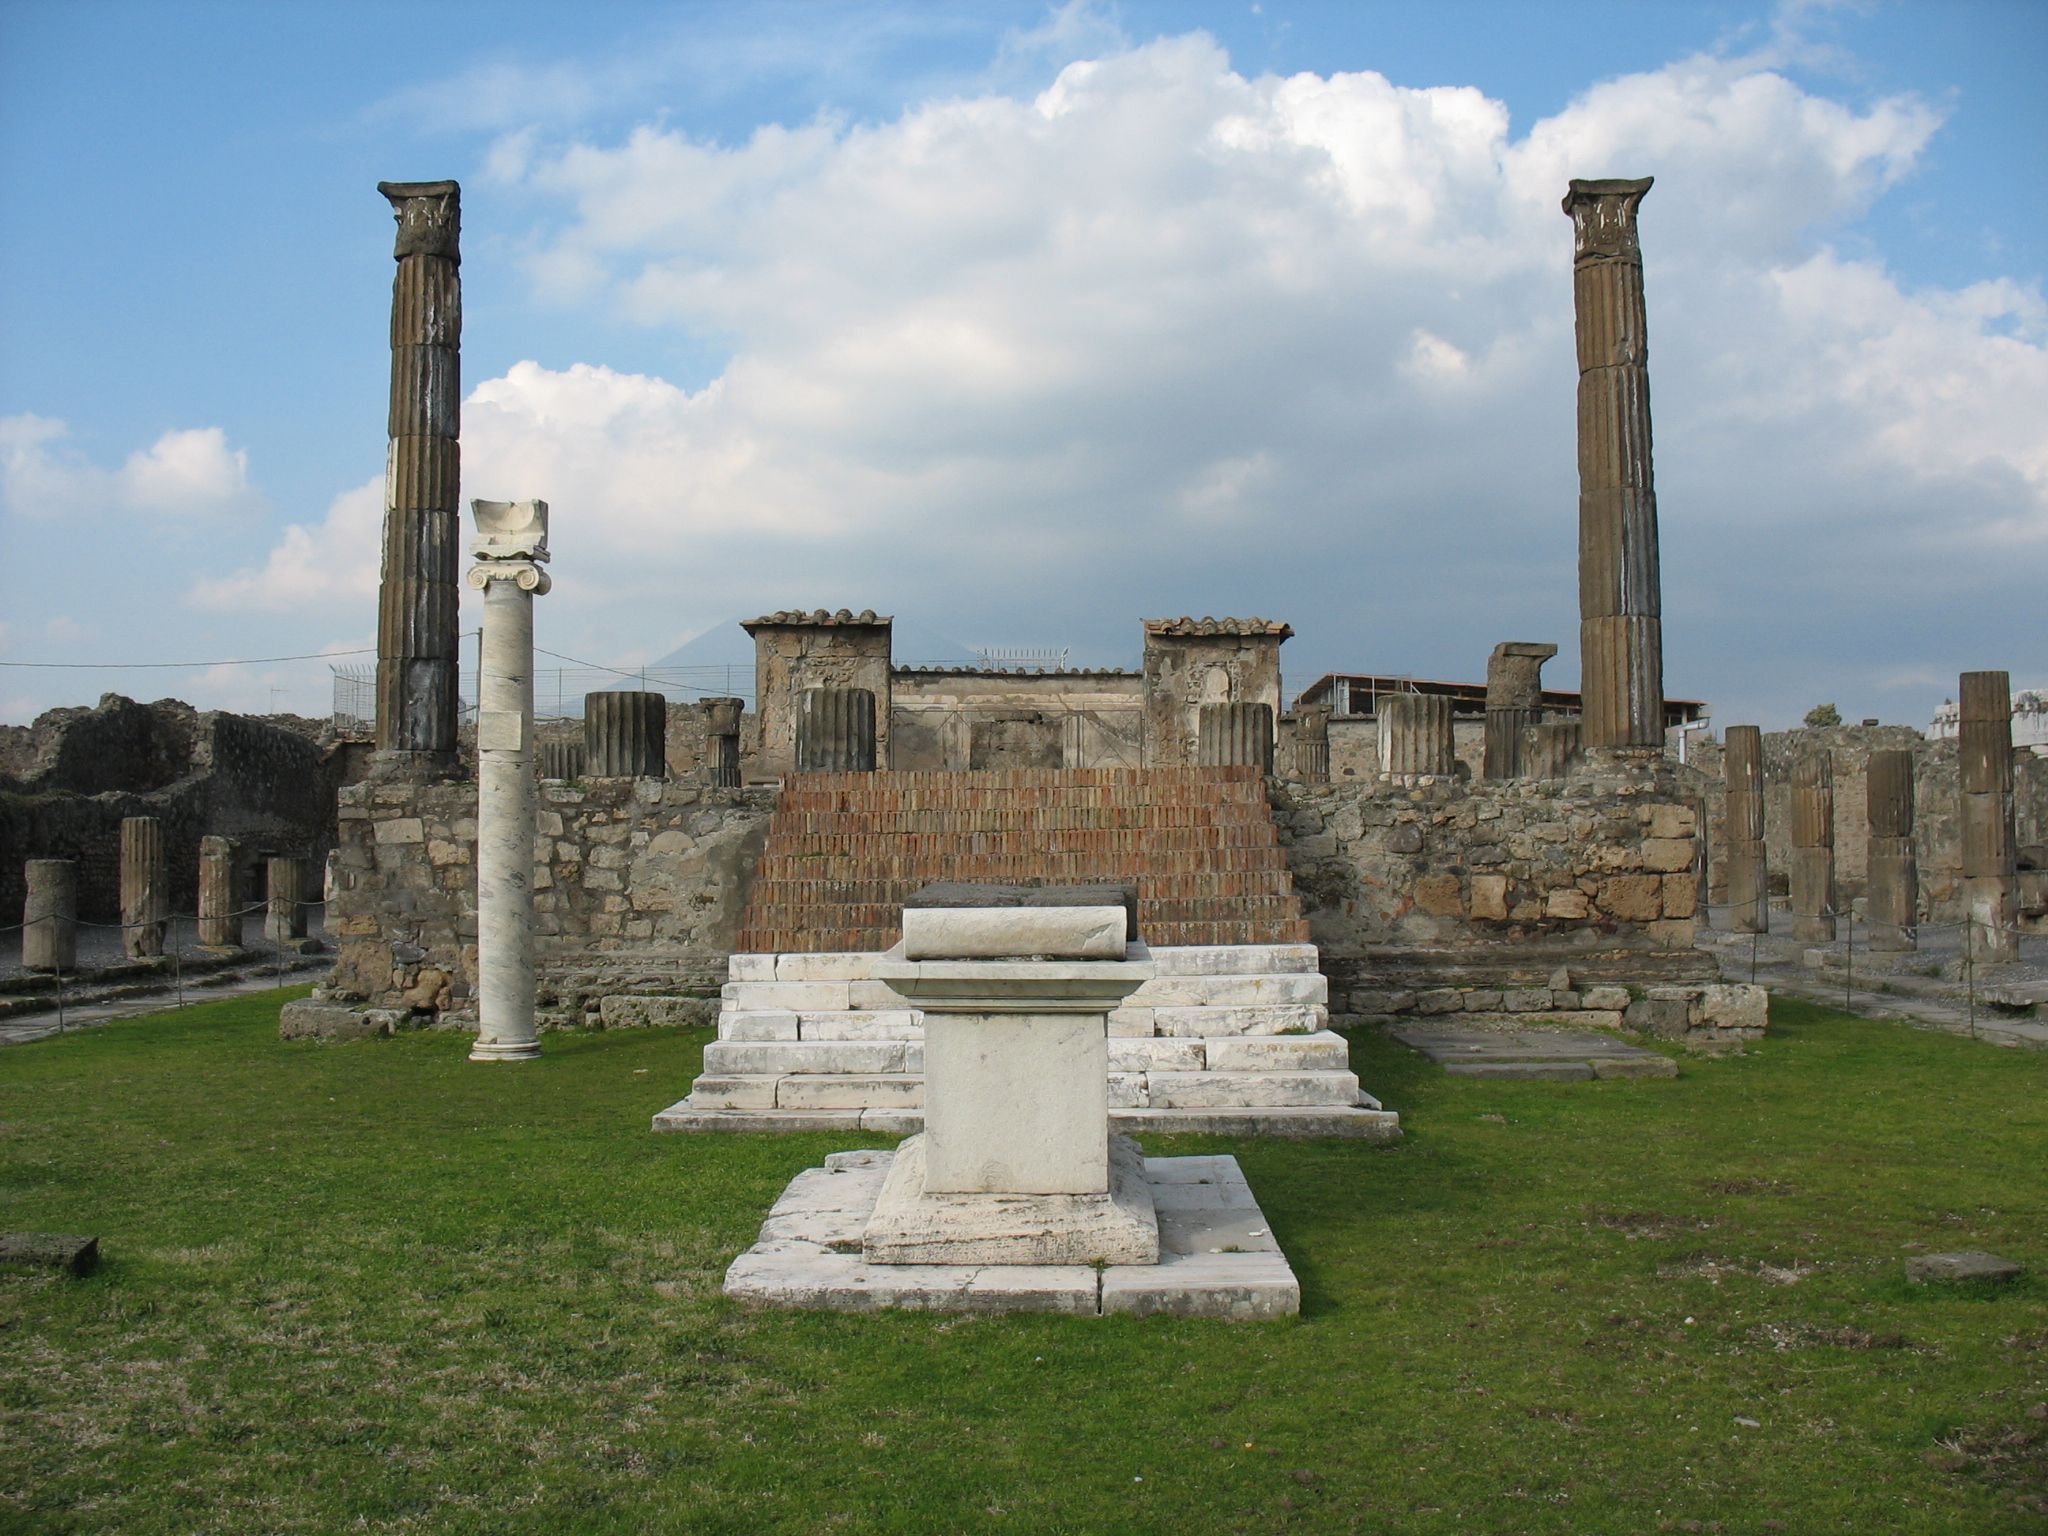 File:Pompeii - Temple of Apollo.jpg - Wikimedia Commons